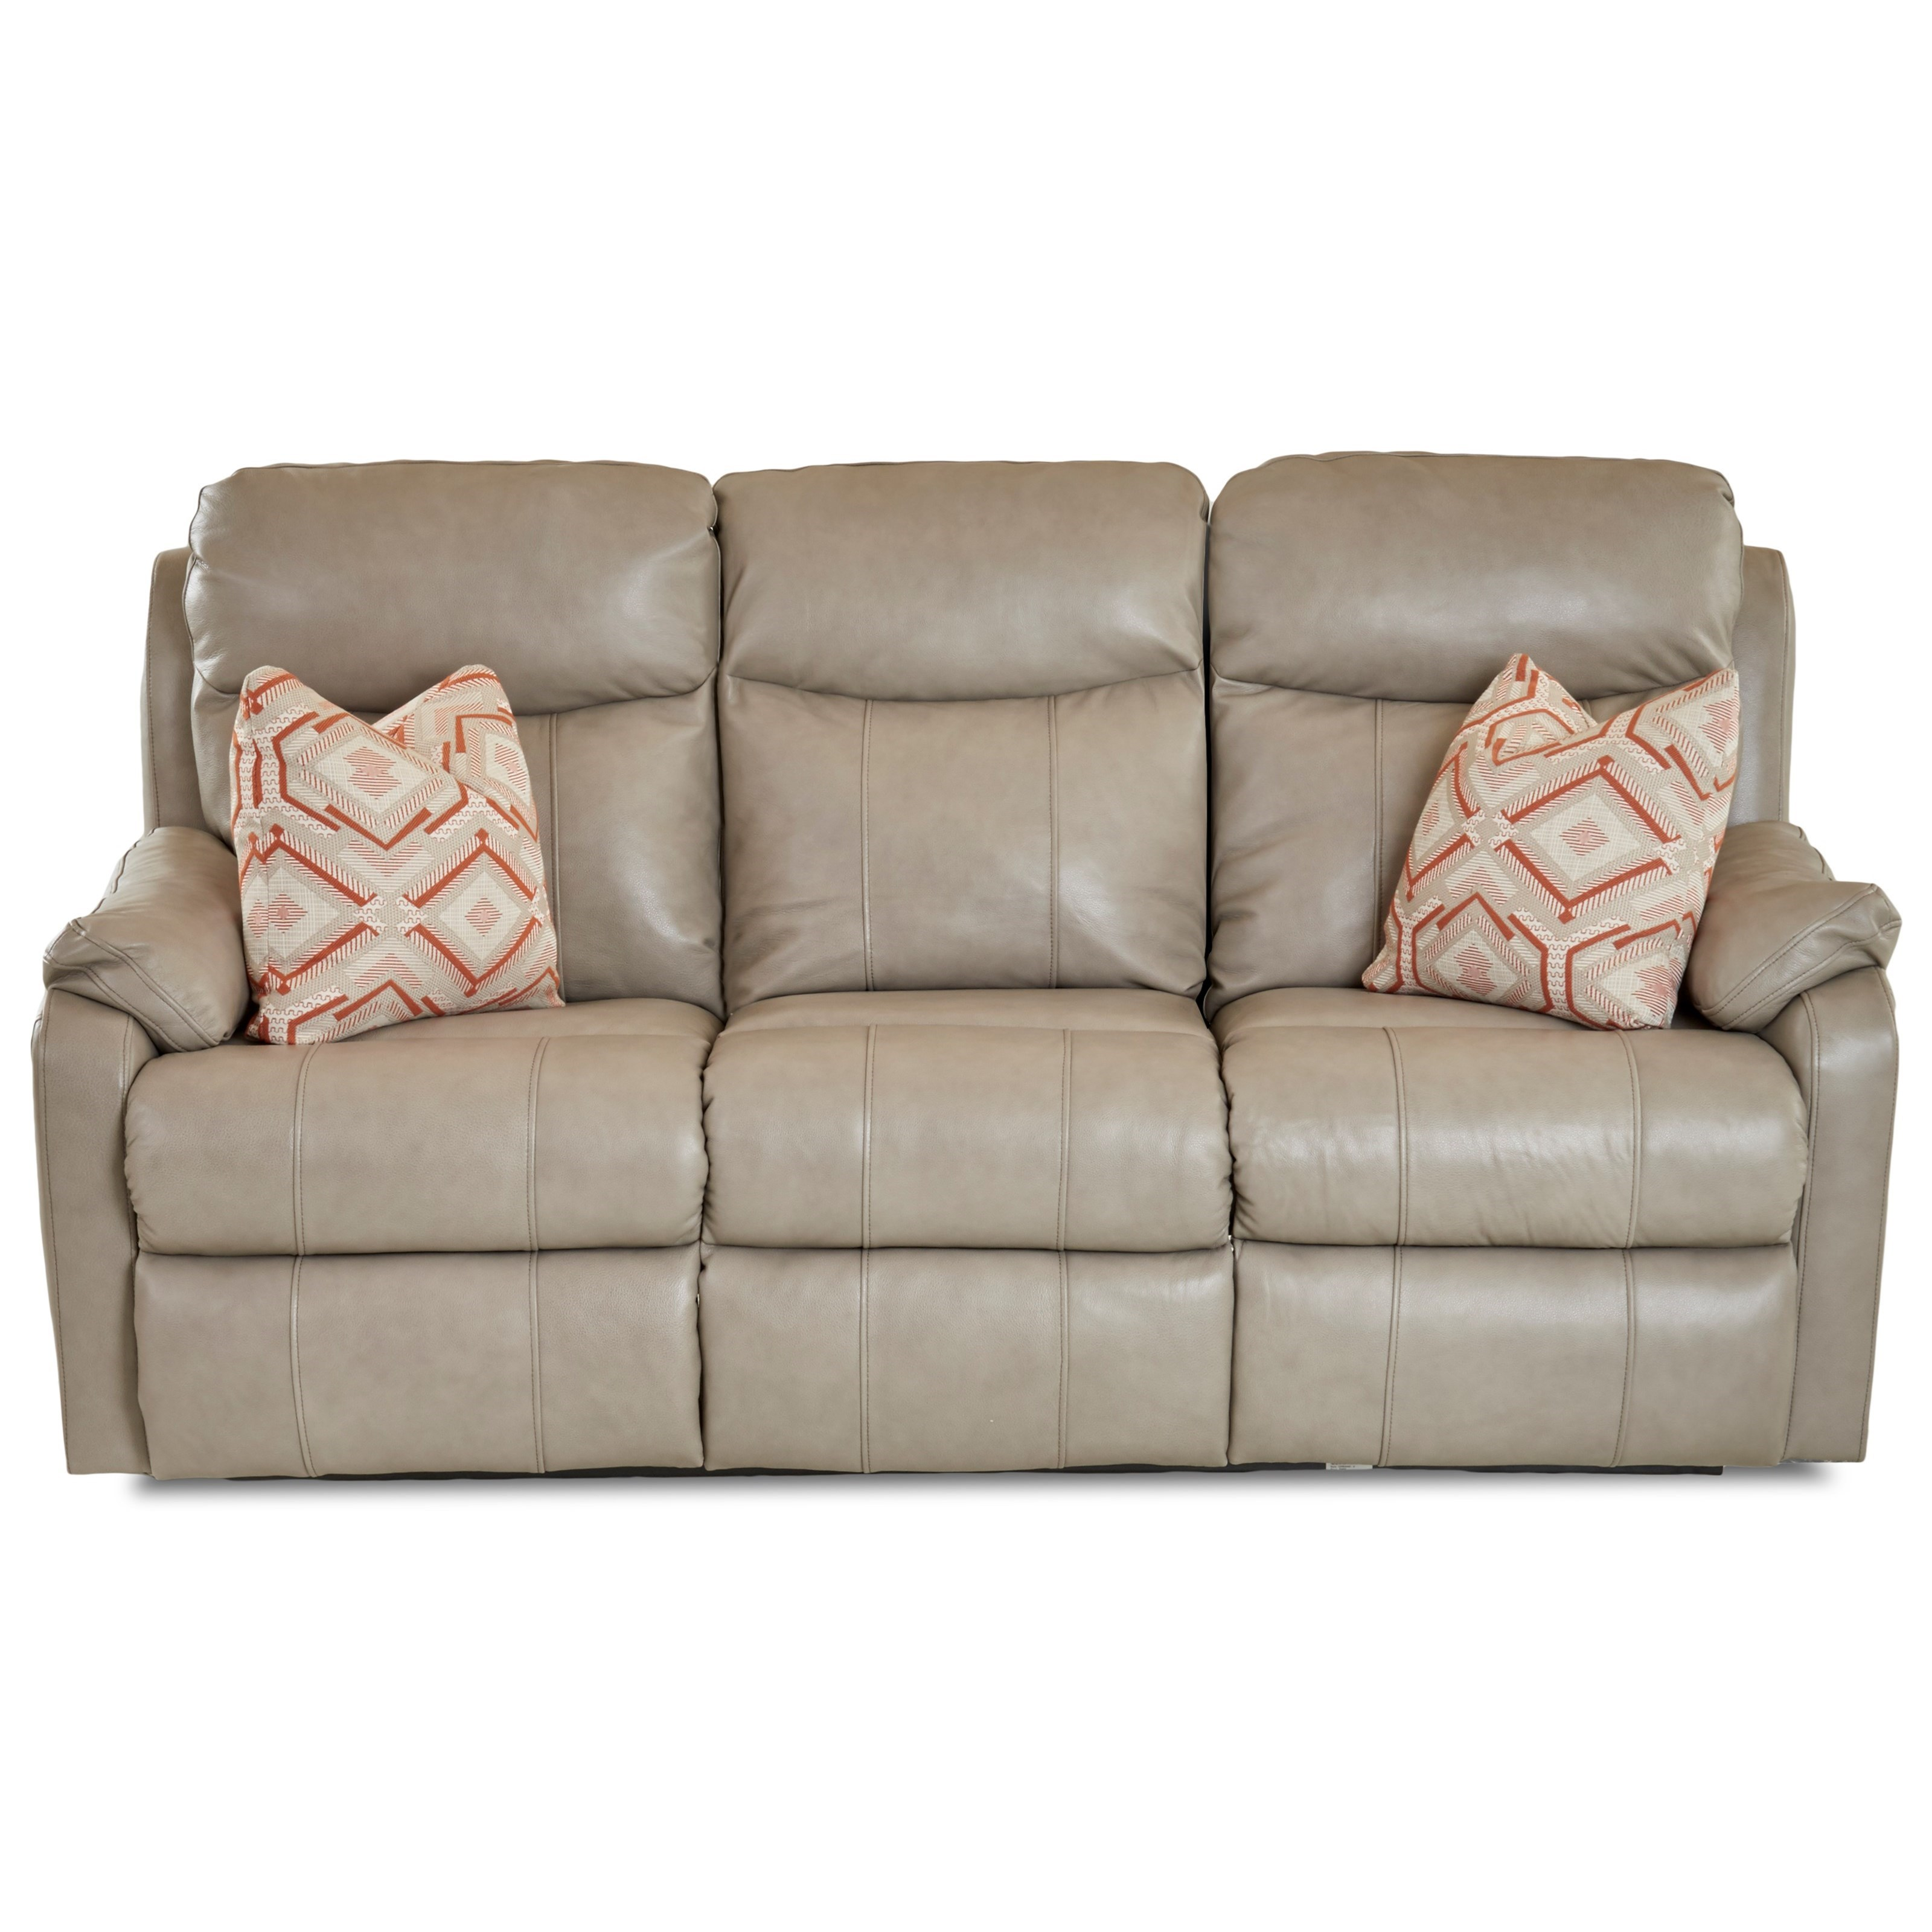 Ashley Furniture Horseheads Ny: Klaussner Solitaire Casual Power Reclining Sofa With Power